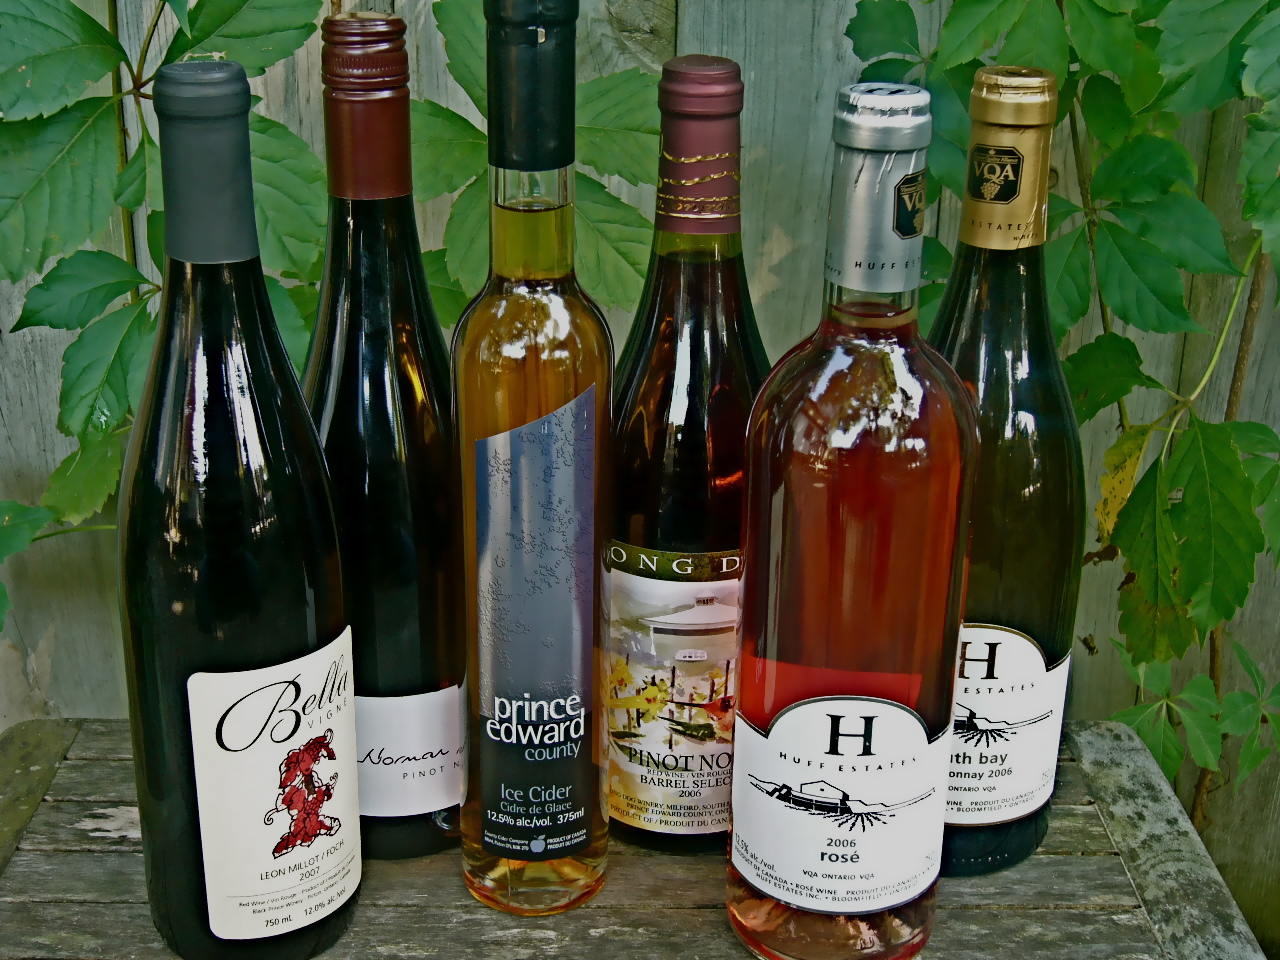 A selection of Prince Edward County wines